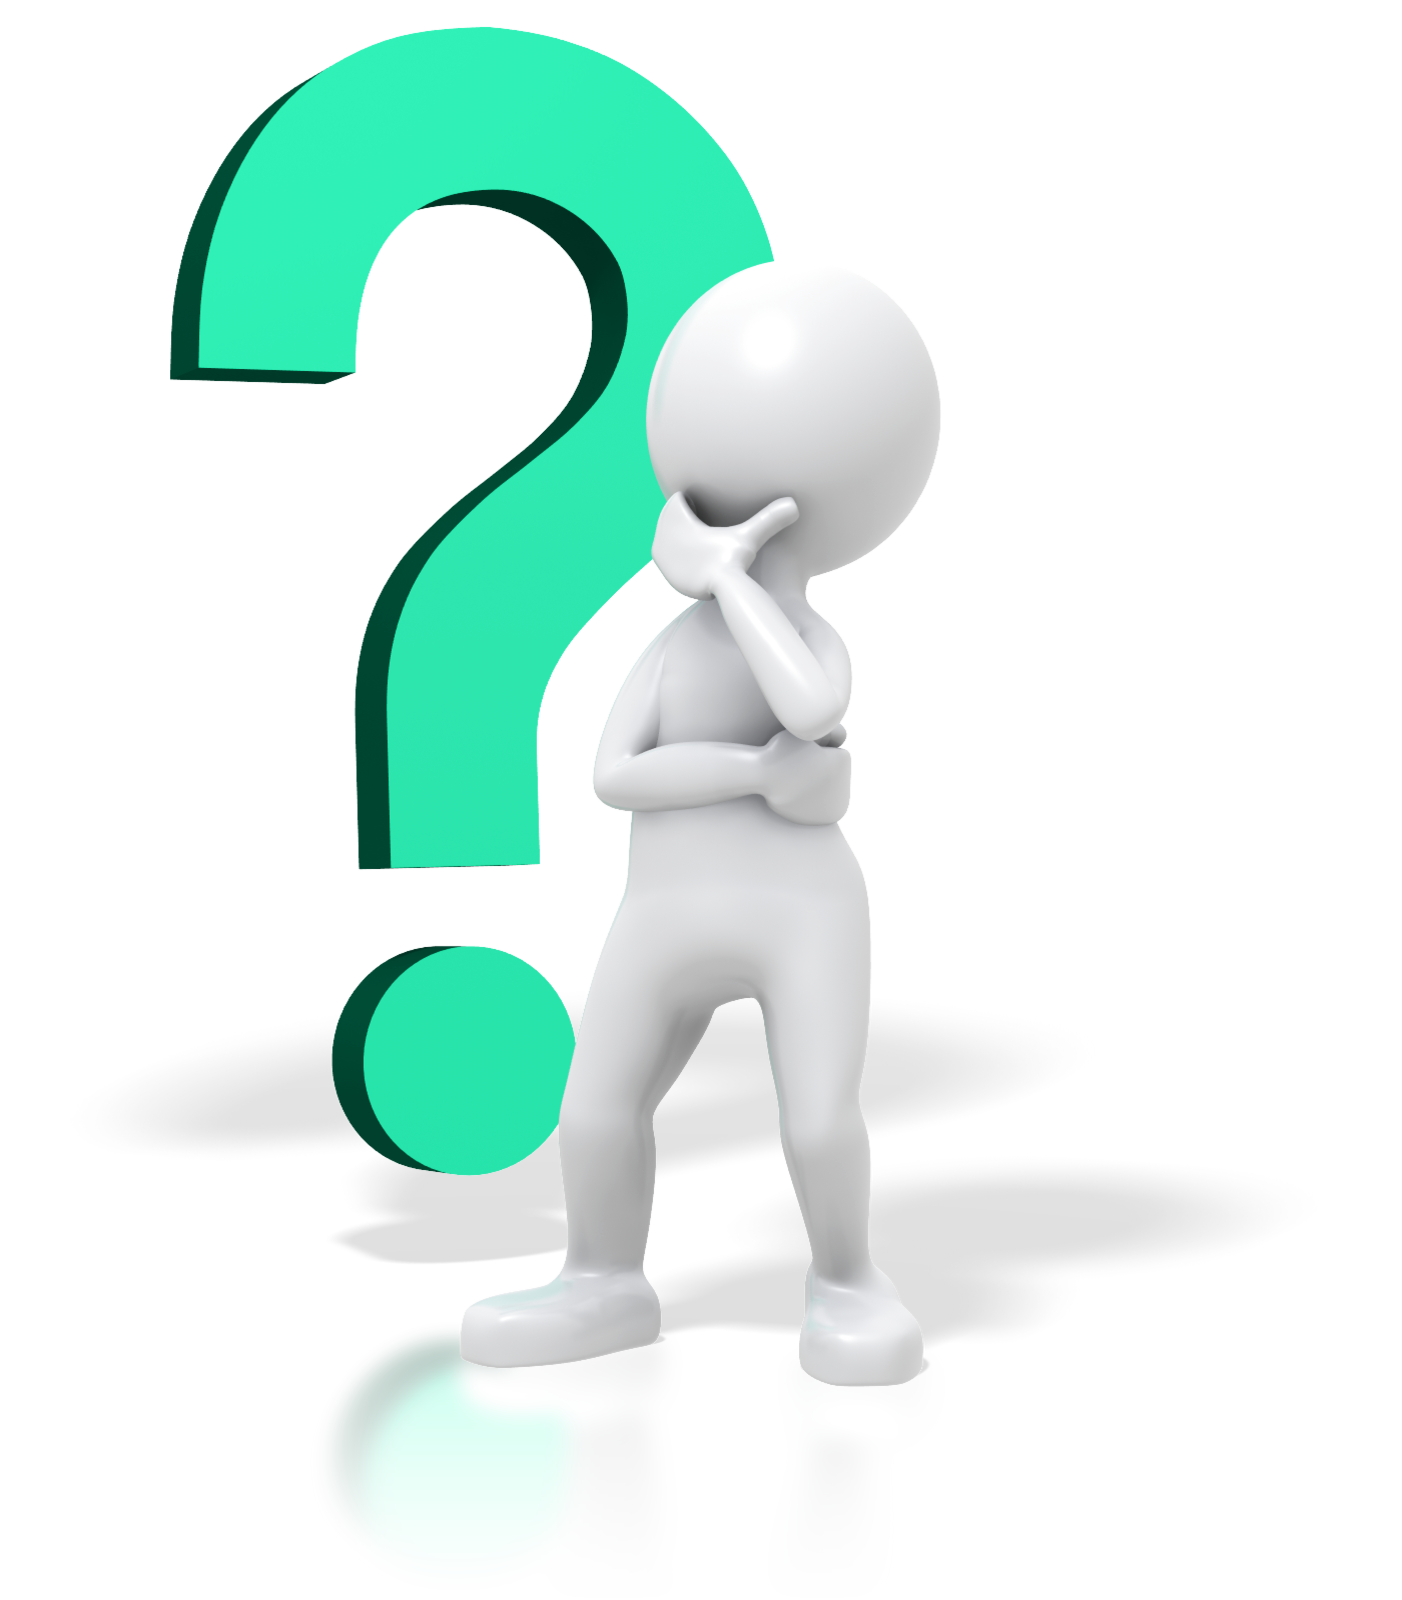 Question Mark clipart person Clipart Panda stick%20man%20thinking Thinking Free